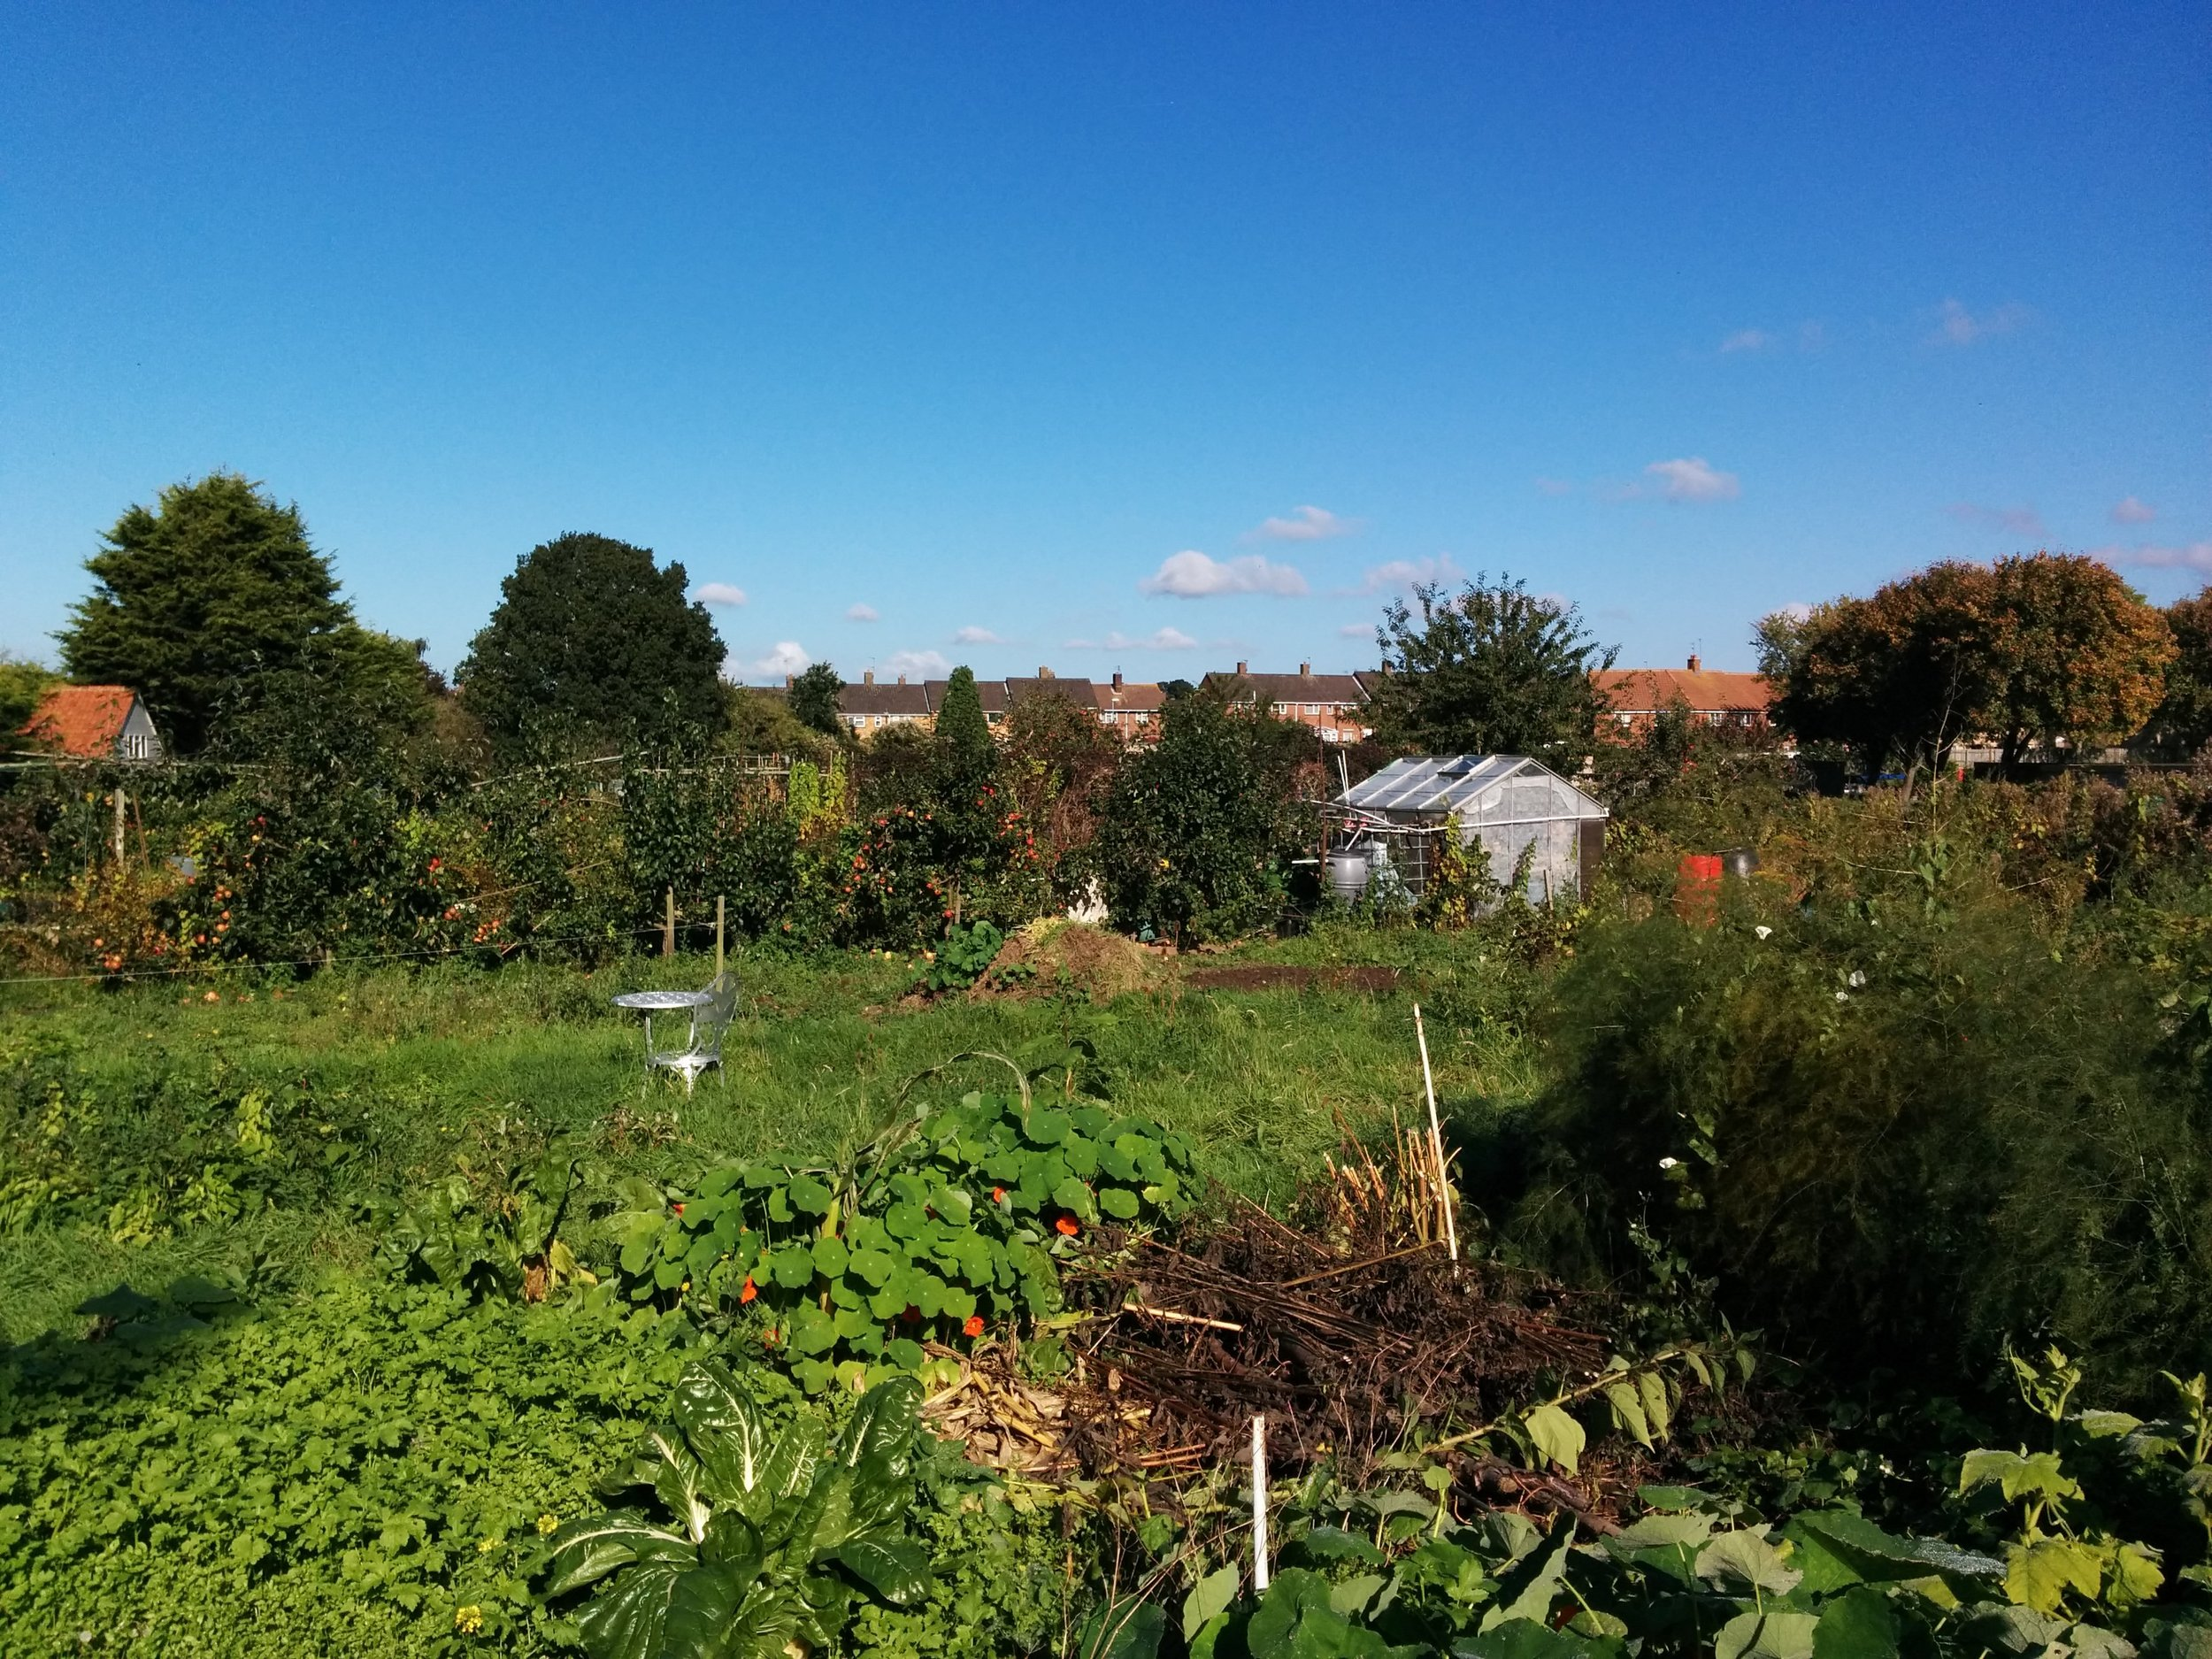 My dad's allotment, where he spends more time than he should.